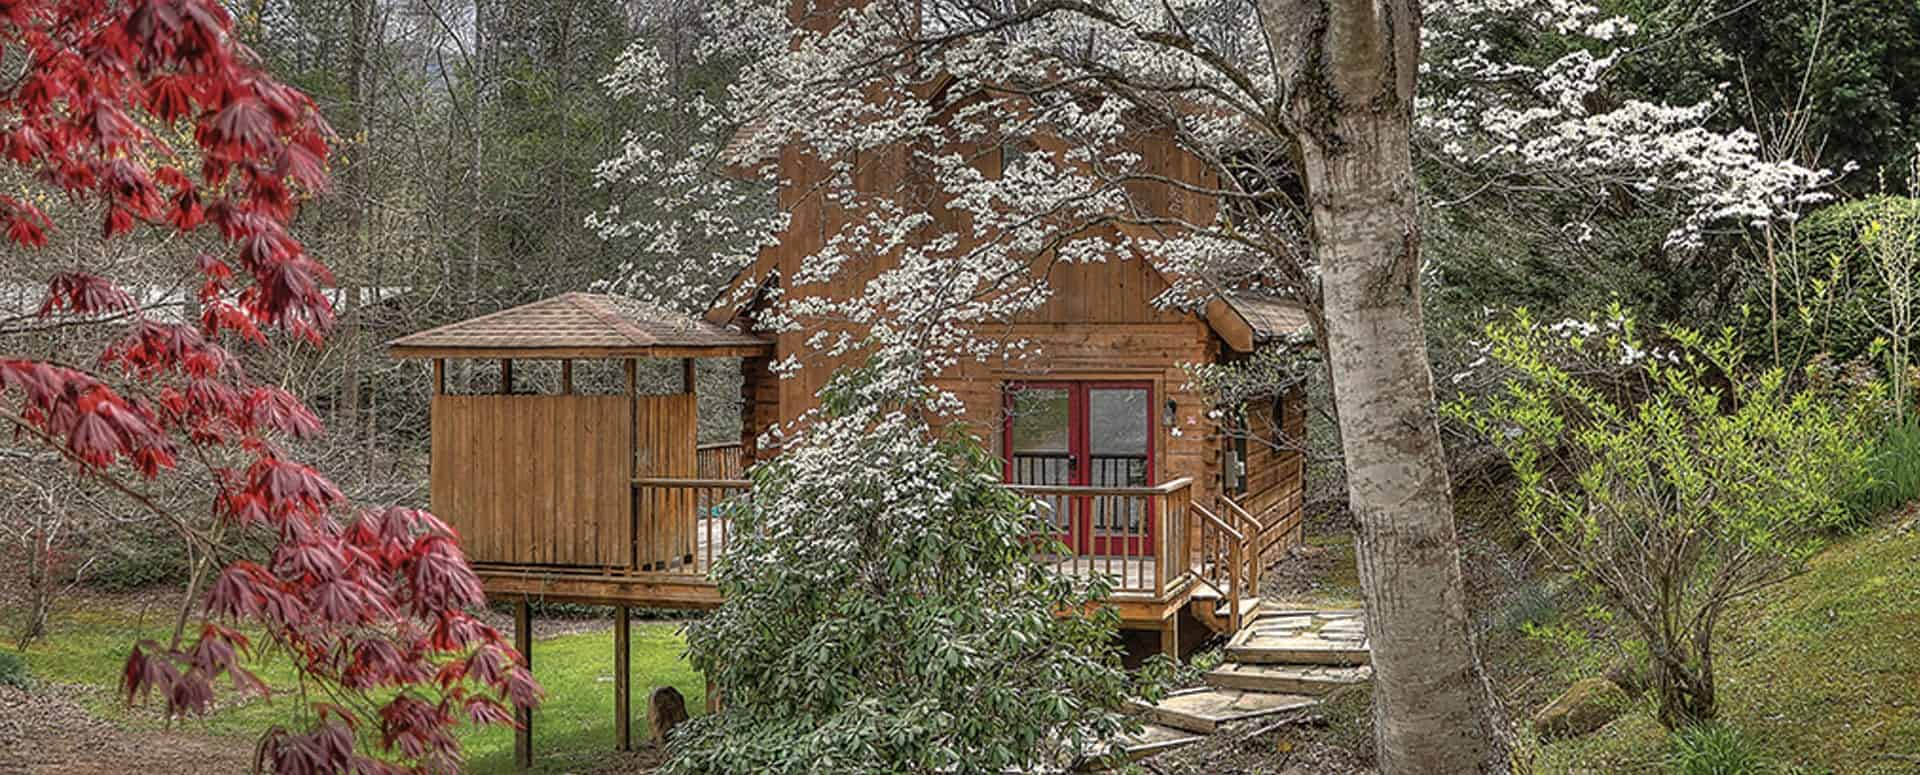 of smokies the fabulous smoky solutions cheap incredible in best ideas tn gatlinburg amazing affordable bedroom friendly charming pet under rentals amenities for mountain cabin cabins